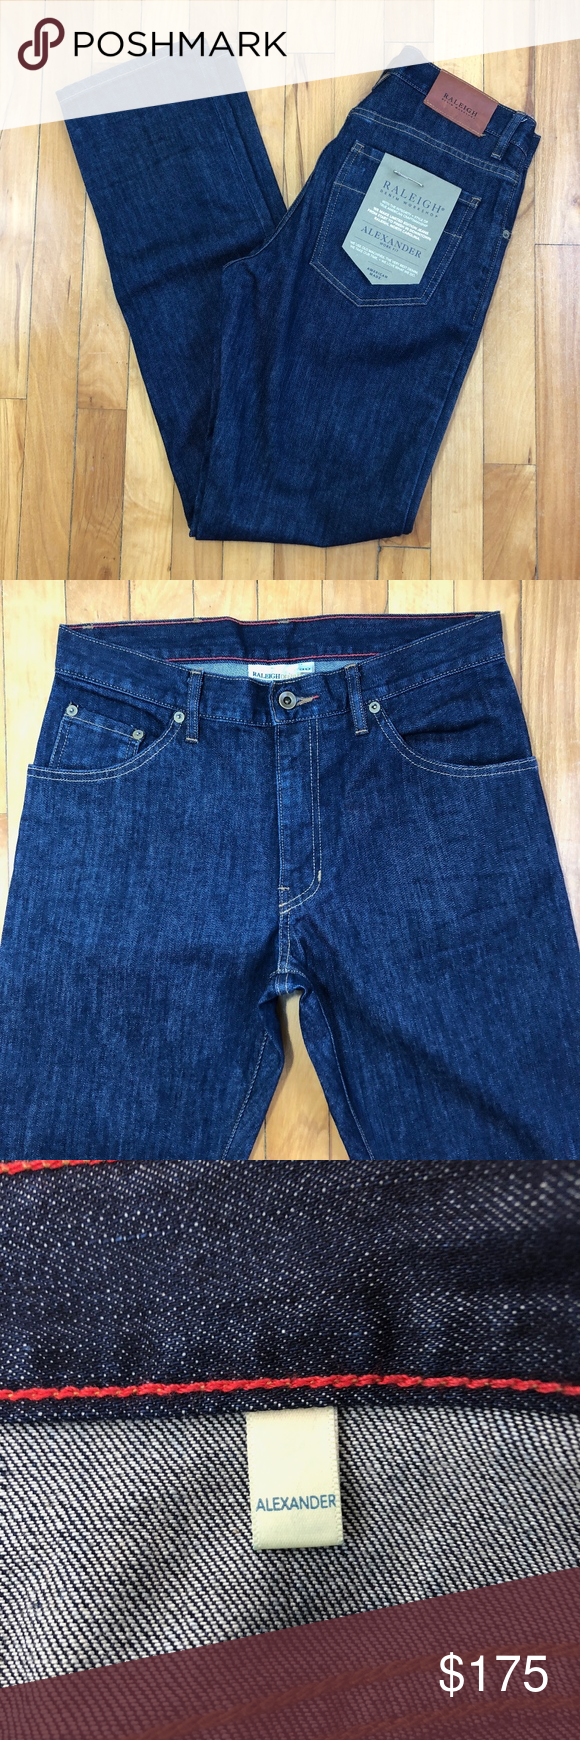 b263773fac5 Raleigh Denim Alexander Work Fit Raleigh Denim Alexander Work Fit. Built  for an athletic frame